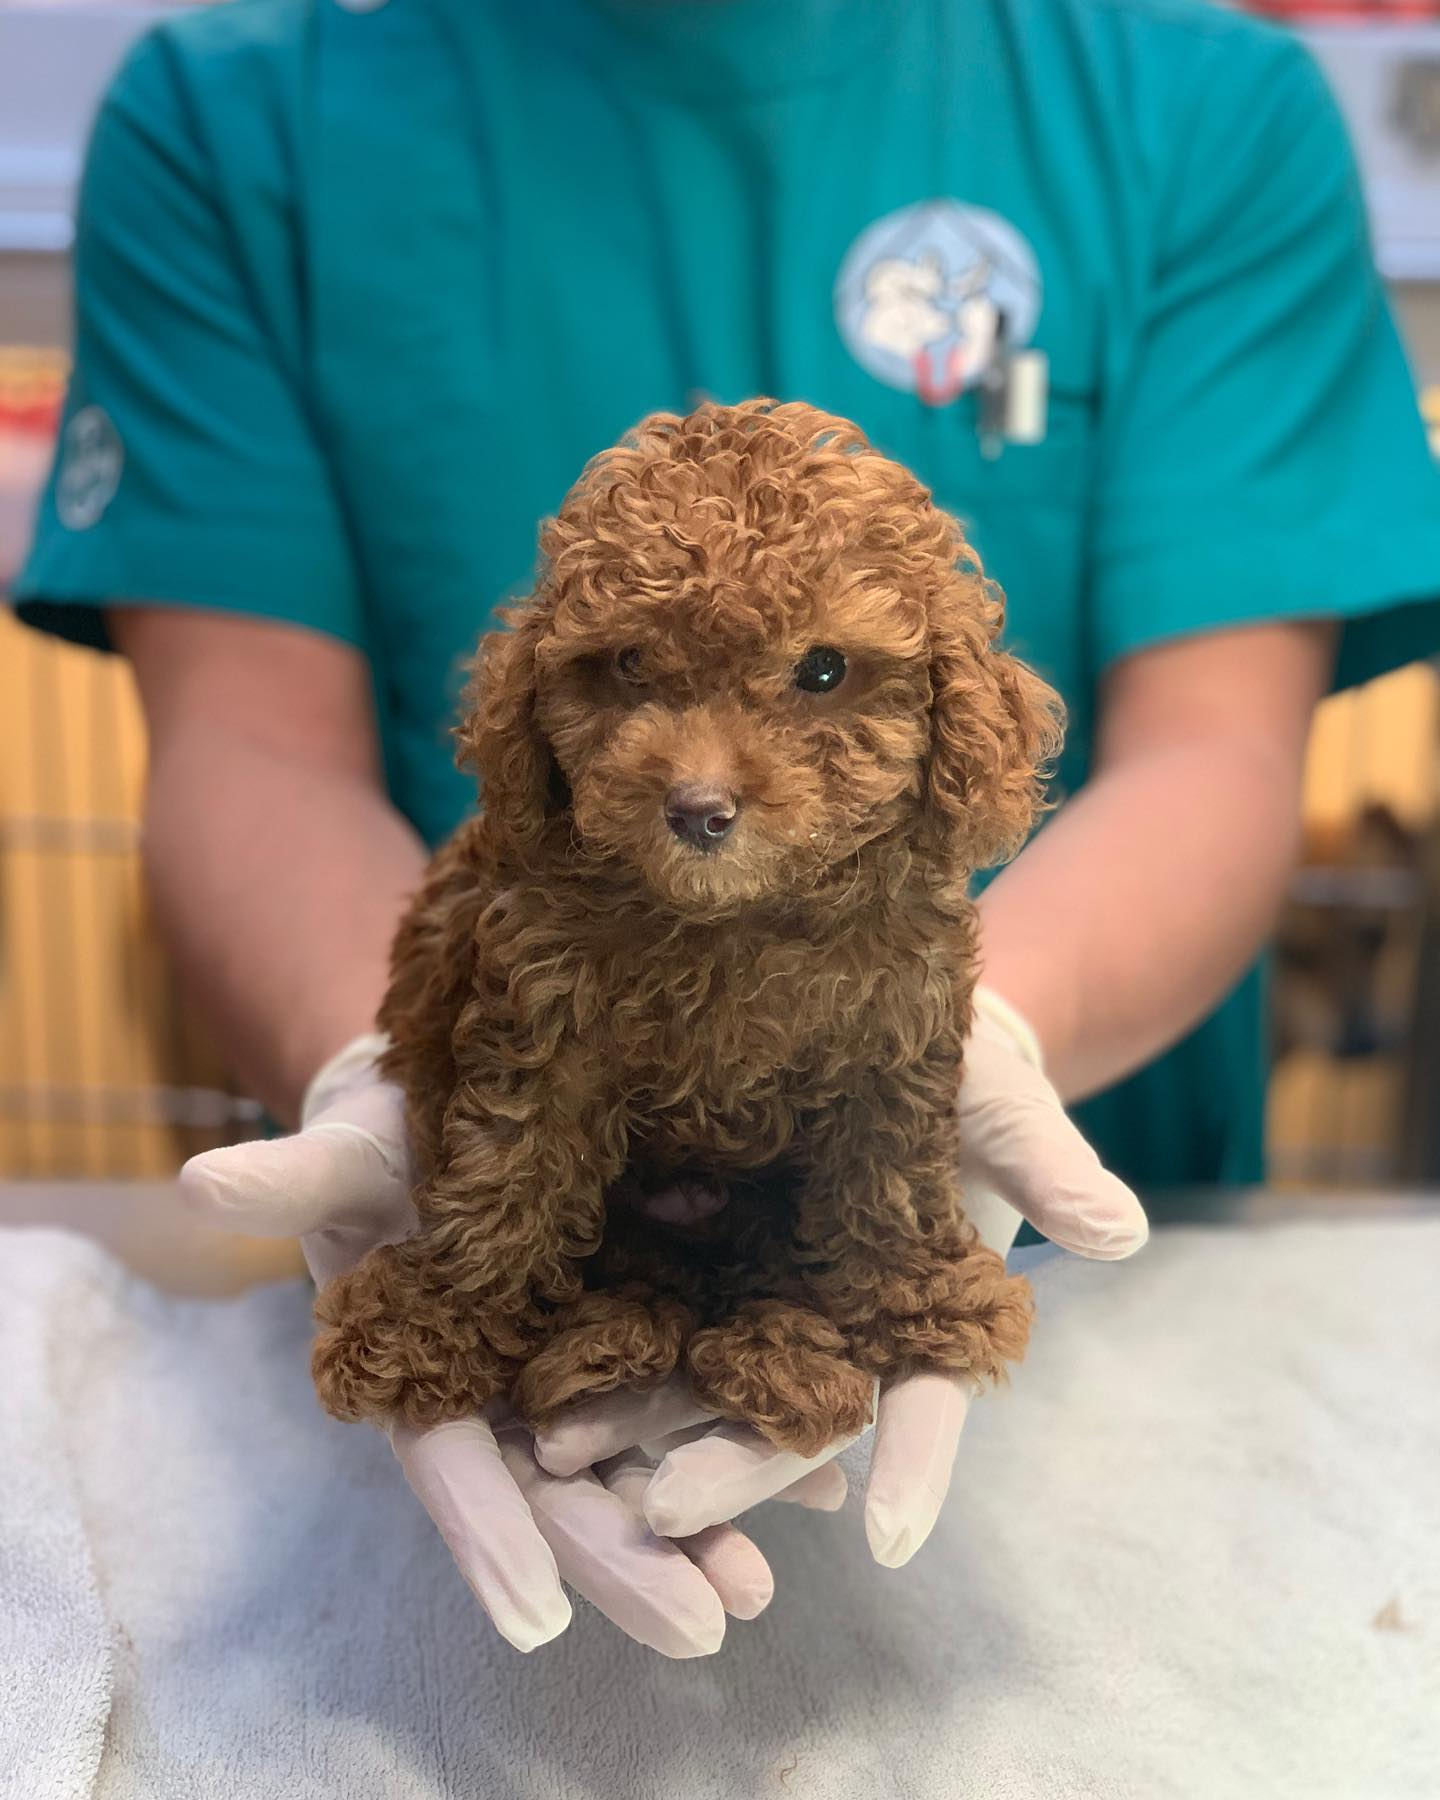 vet holding poodle in his hands